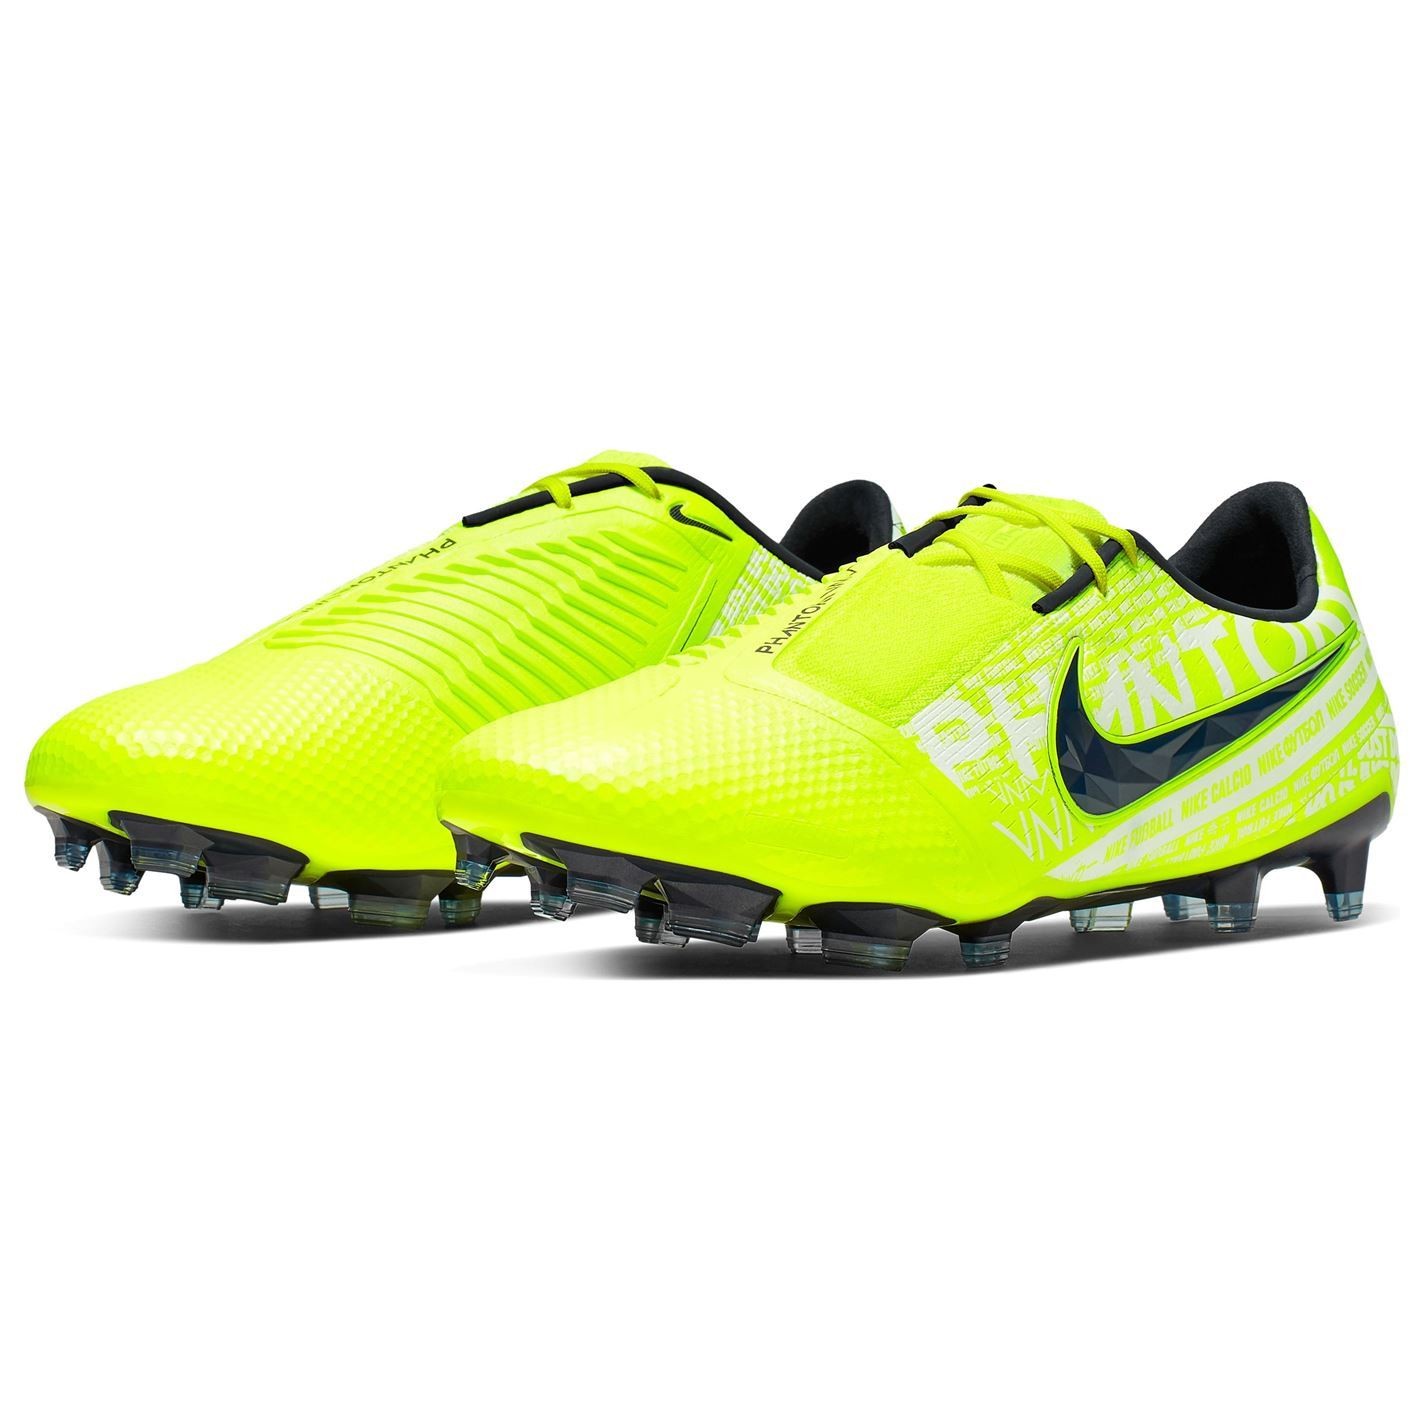 Nike-Phantom-Venom-Elite-Homme-FG-Firm-Ground-Chaussures-De-Football-Chaussures-de-foot-crampons miniature 22